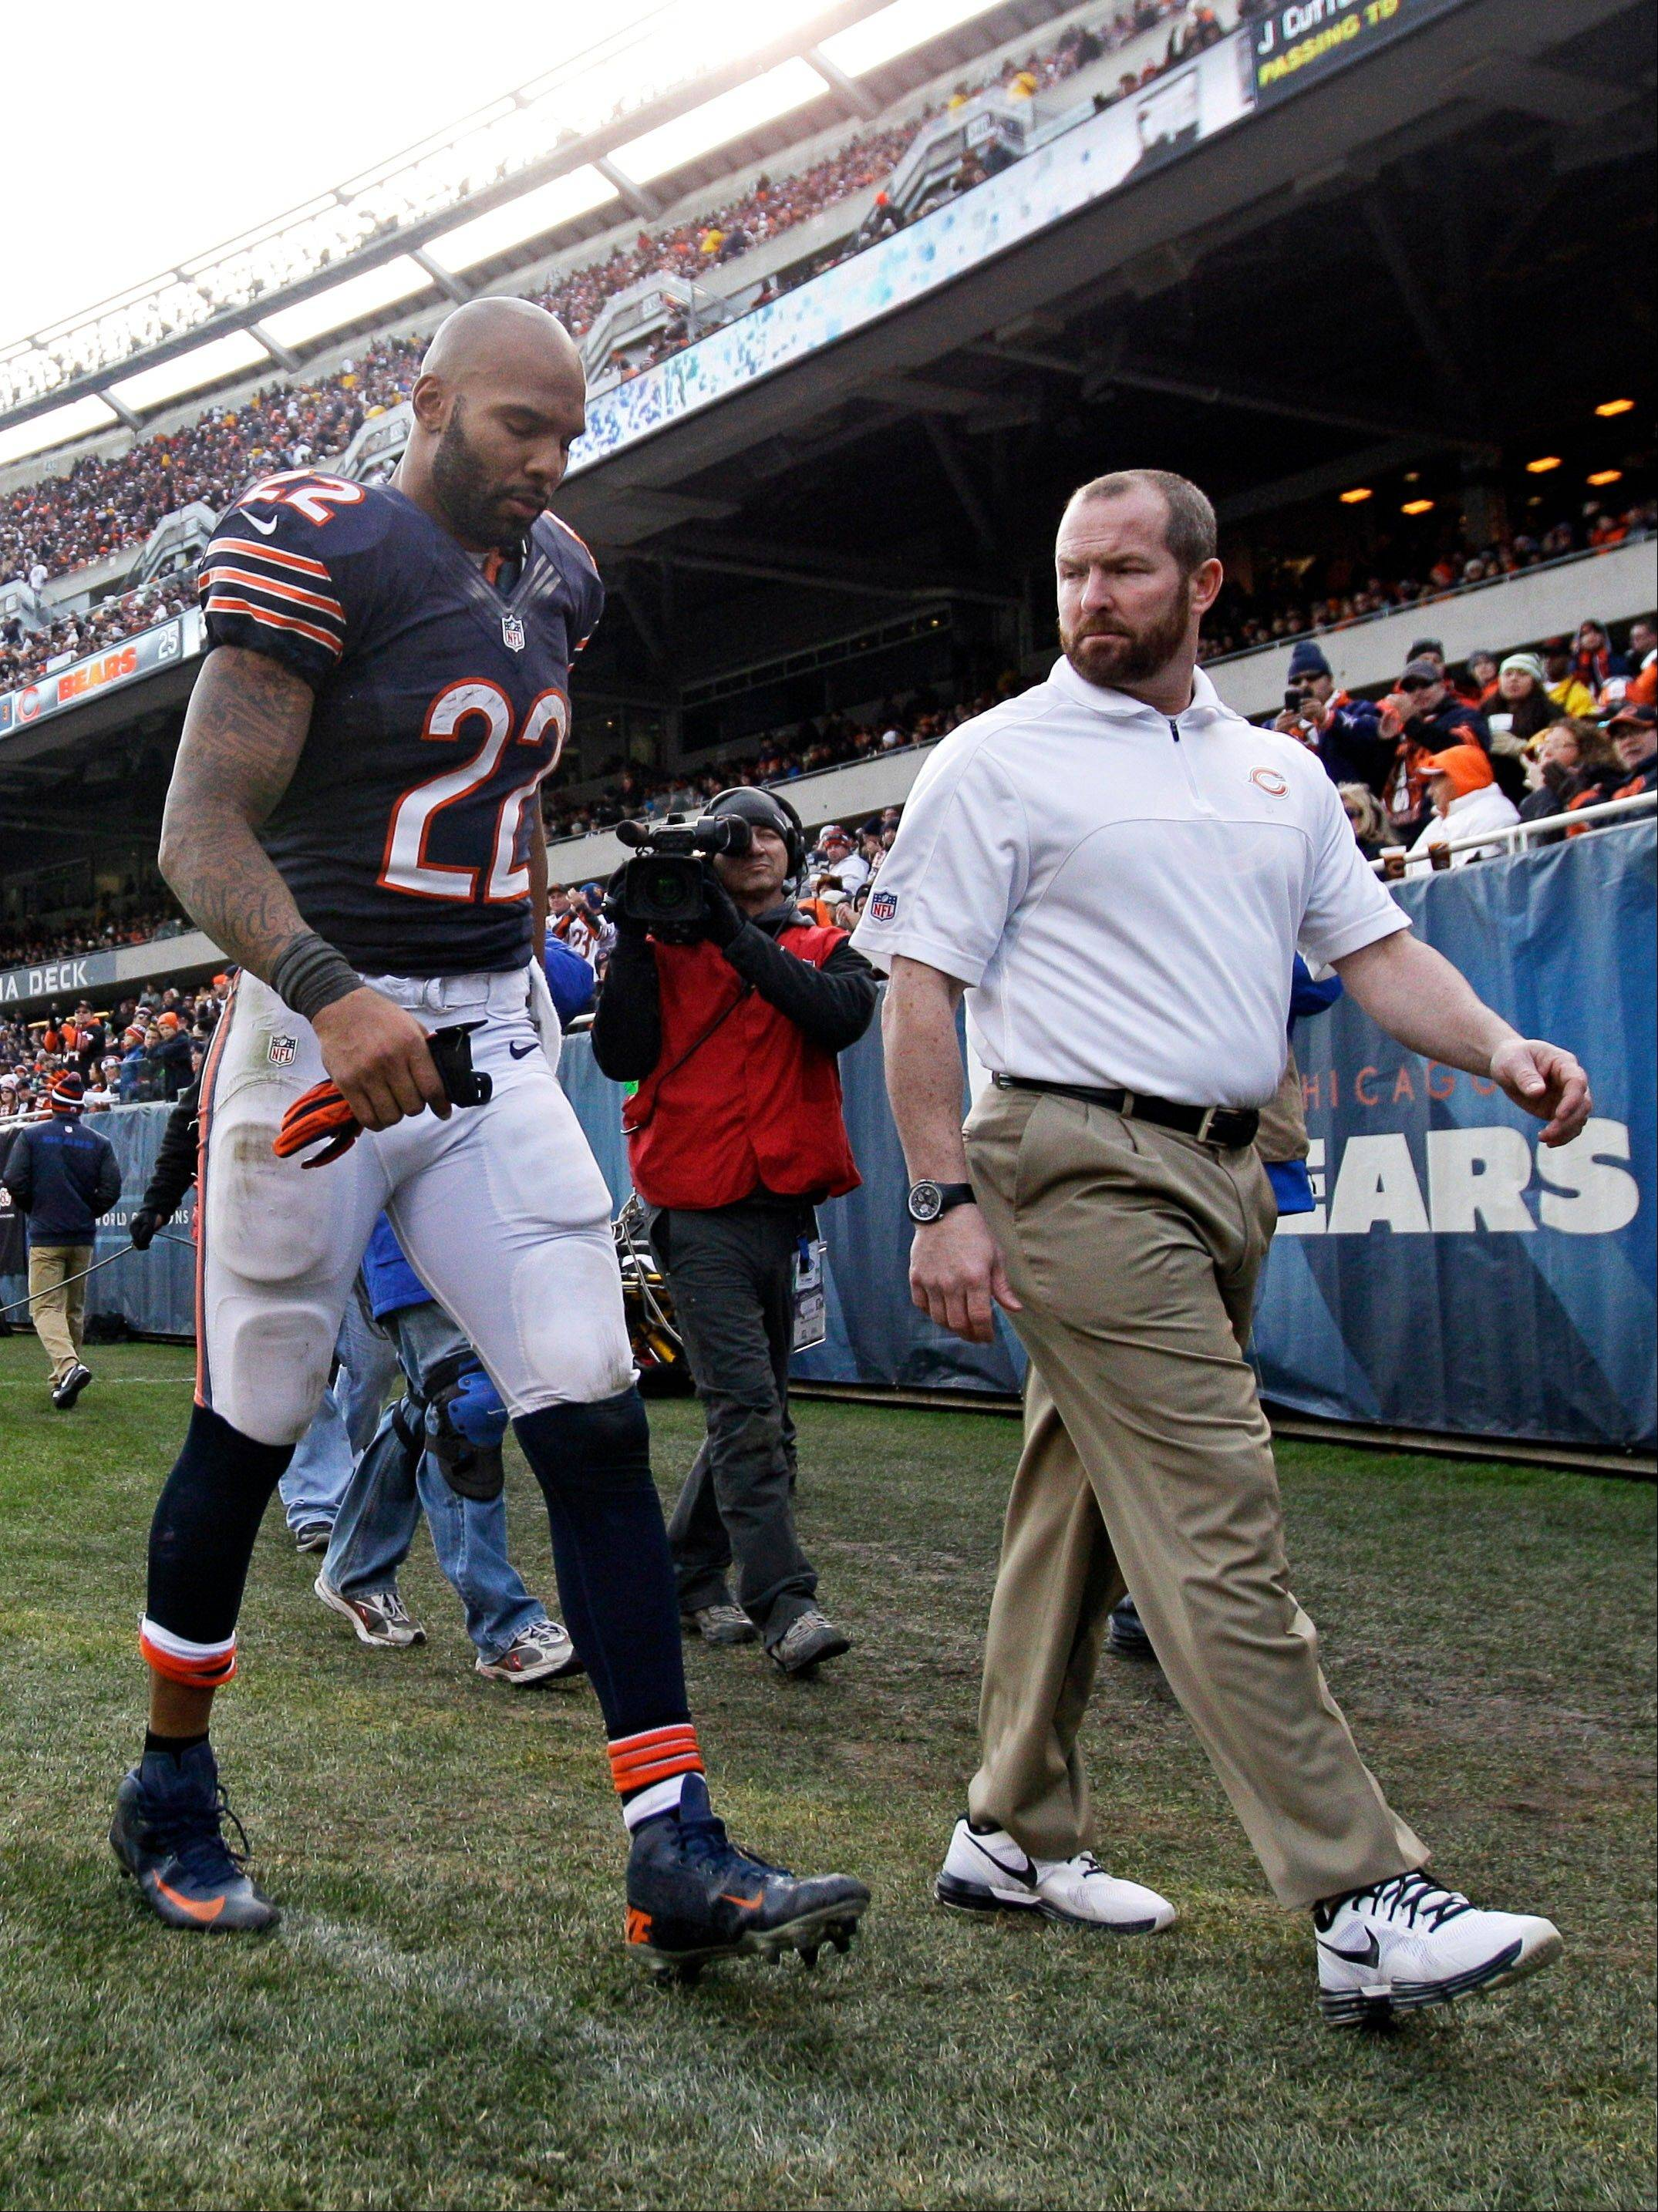 Chicago Bears running back Matt Forte (22) walks to the locker room with a trainer after getting injured in the second half of an NFL football game against the Minnesota Vikings in Chicago, Sunday.